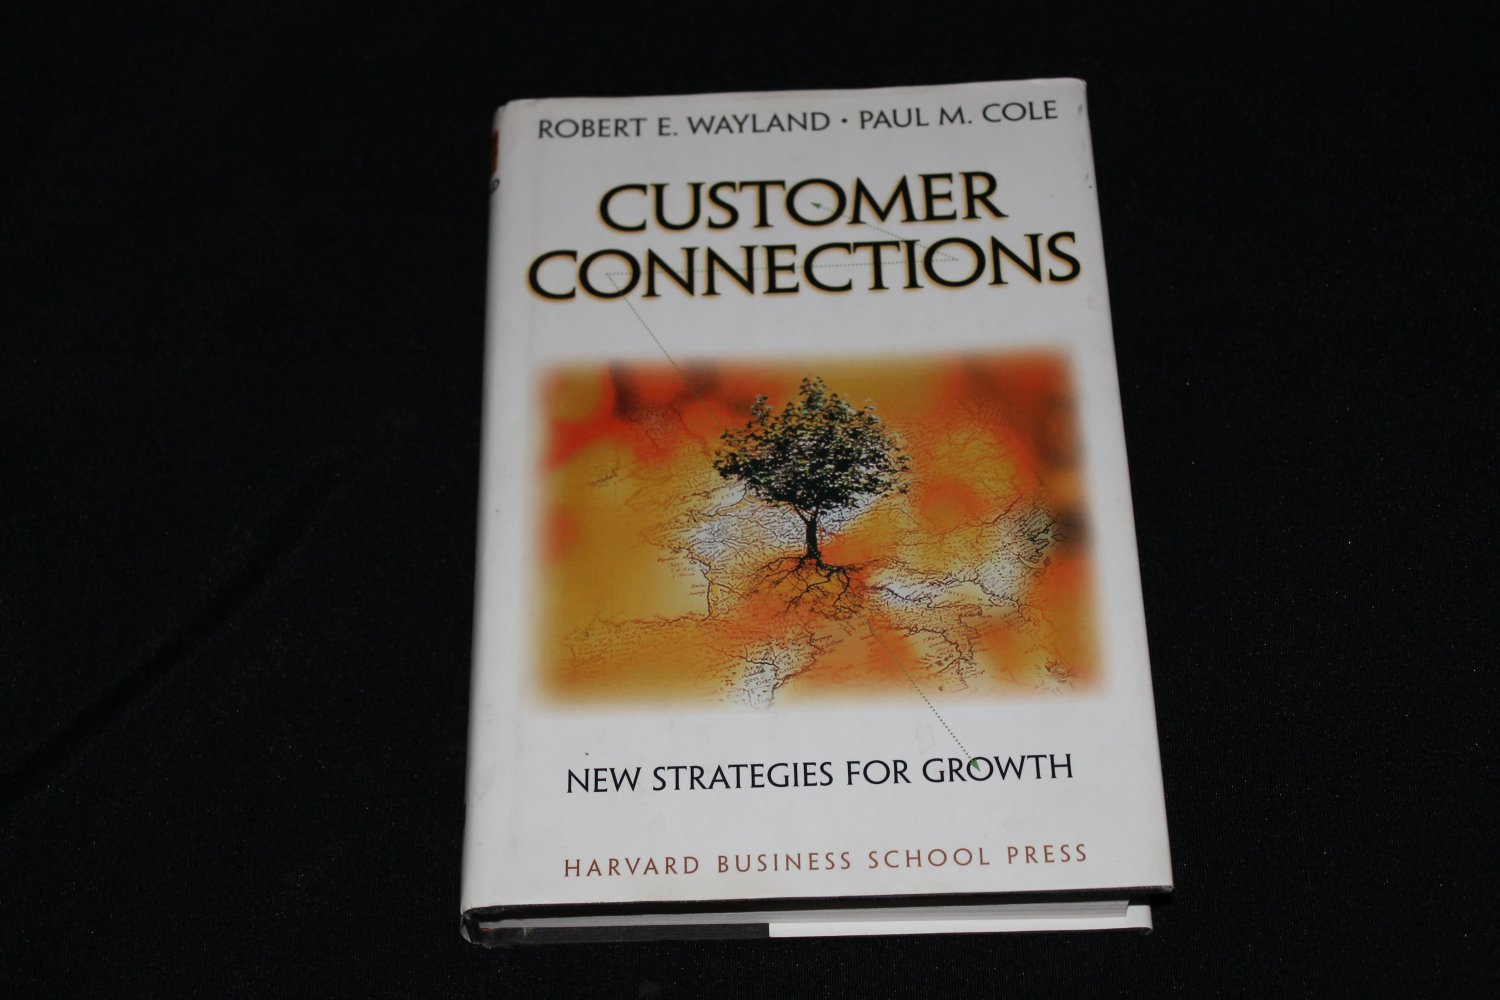 CUSTOMER CONNECTIONS - Hardcover Book New Strategies for Growth business hardcover book